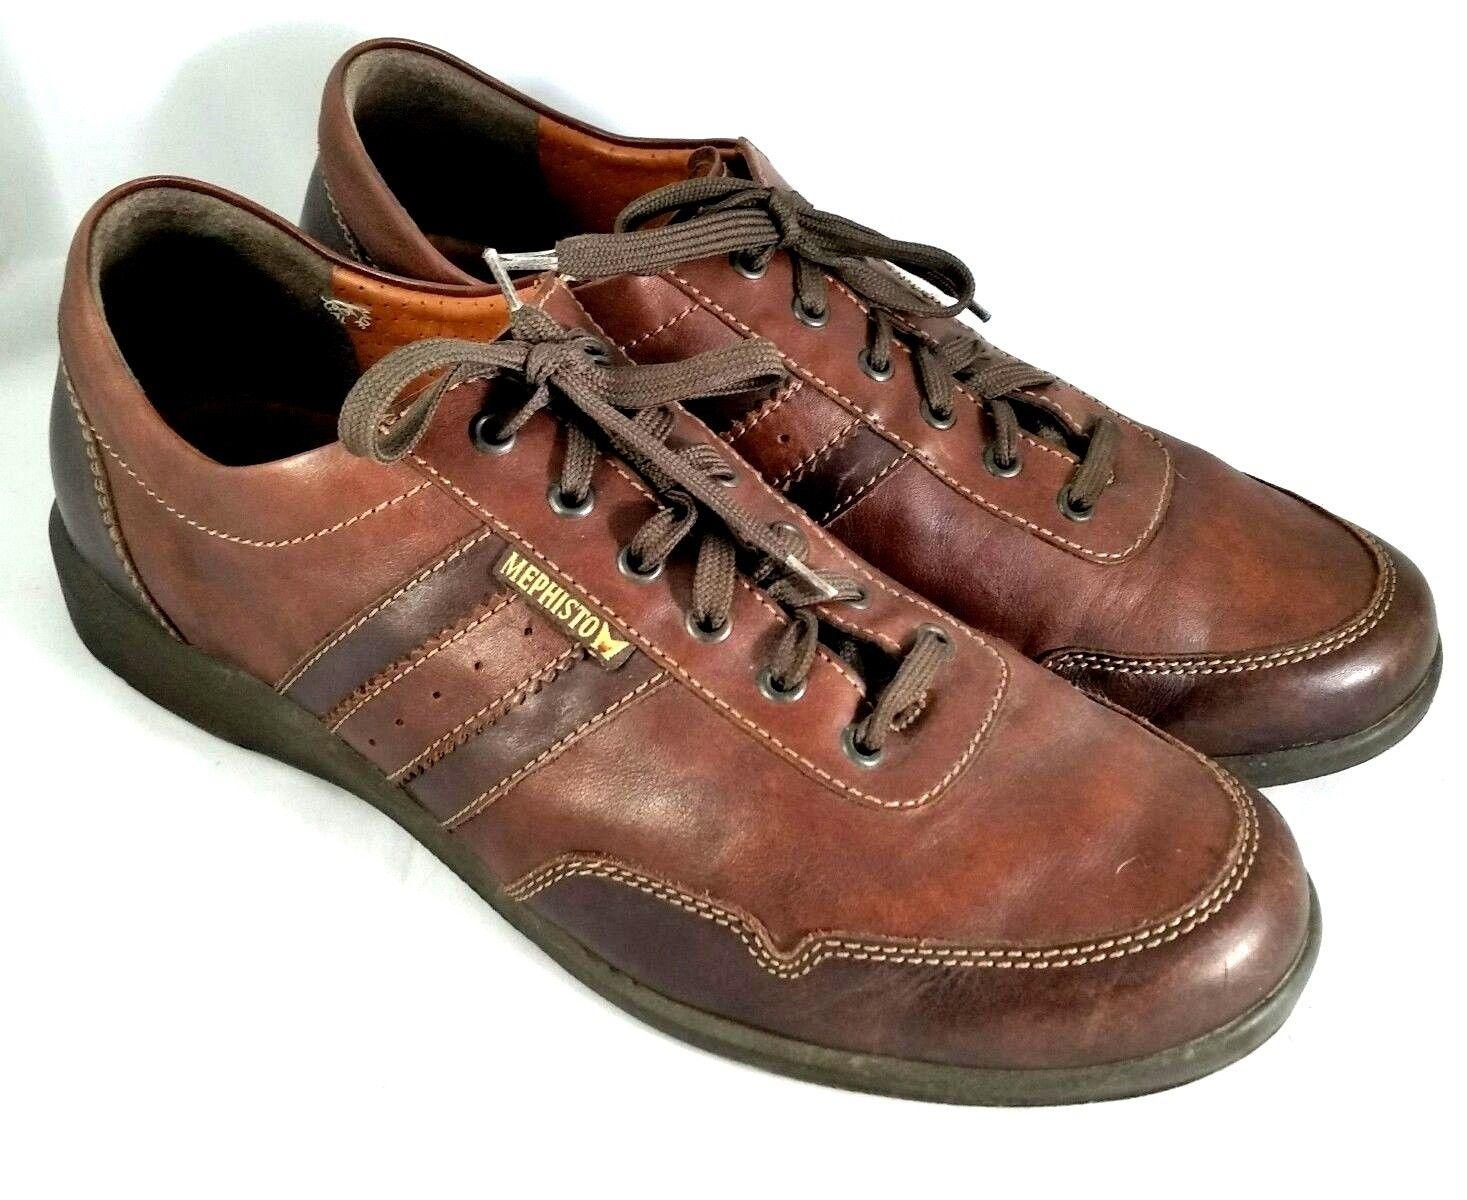 Mephisto Brown Bonito Air-jet Leather Sneakers Comfort Walking Sport Flats  Size US 12 Regular (M, B) - Tradesy